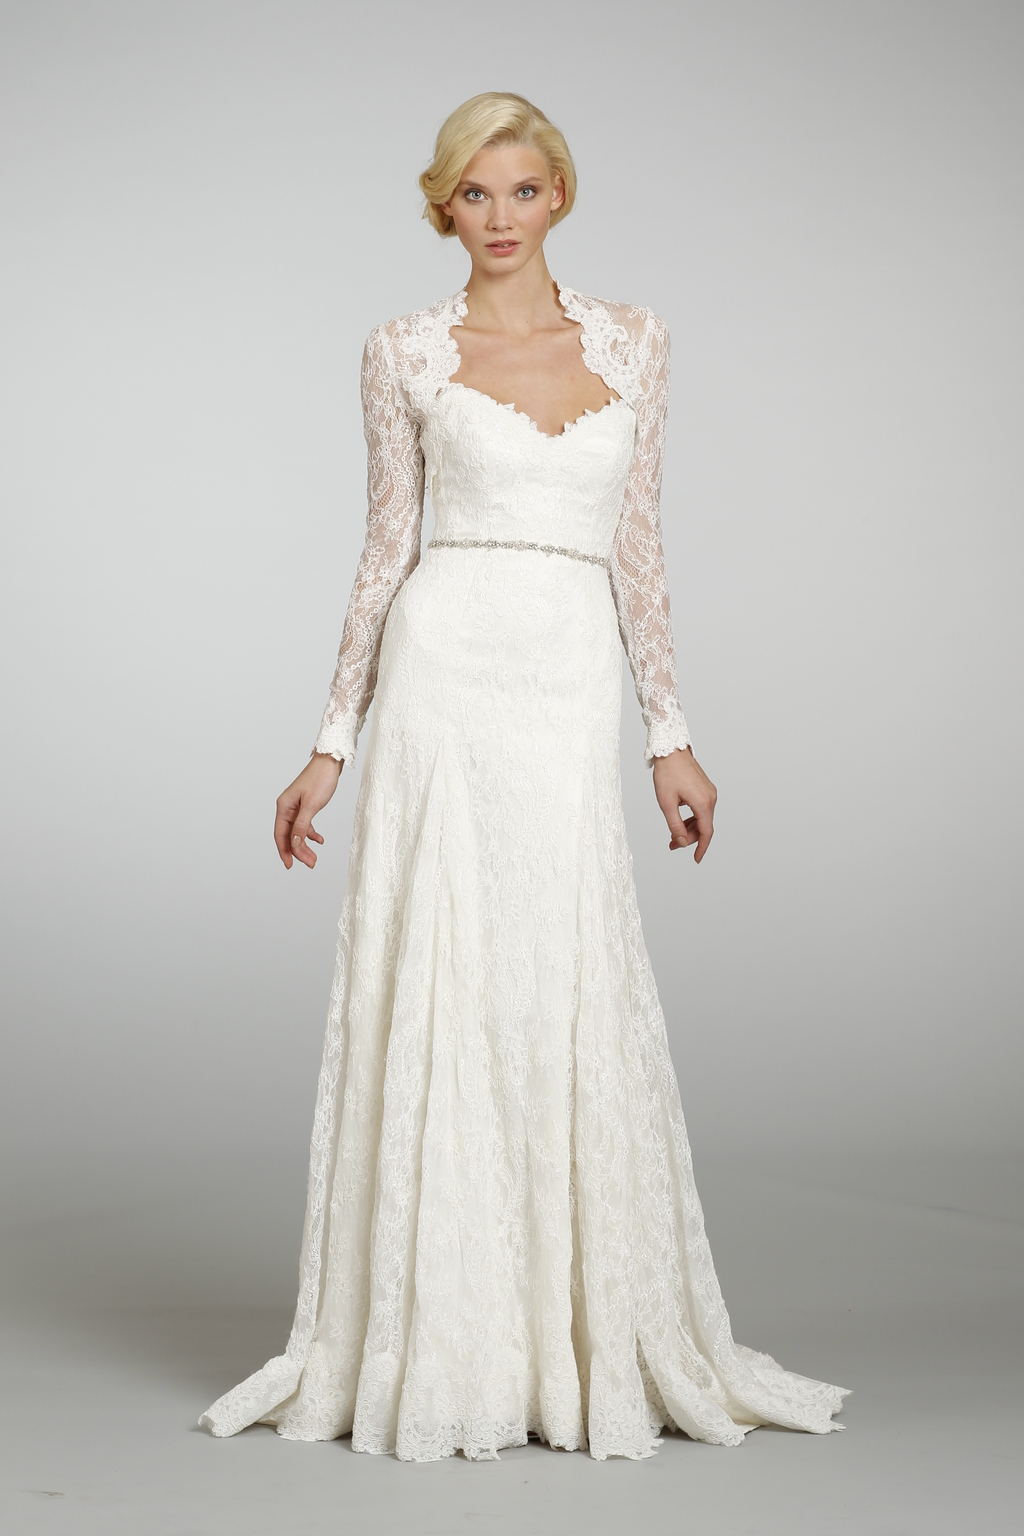 Spring 2013 wedding dress hayley paige bridal gowns 6305 for Hayley paige wedding dress